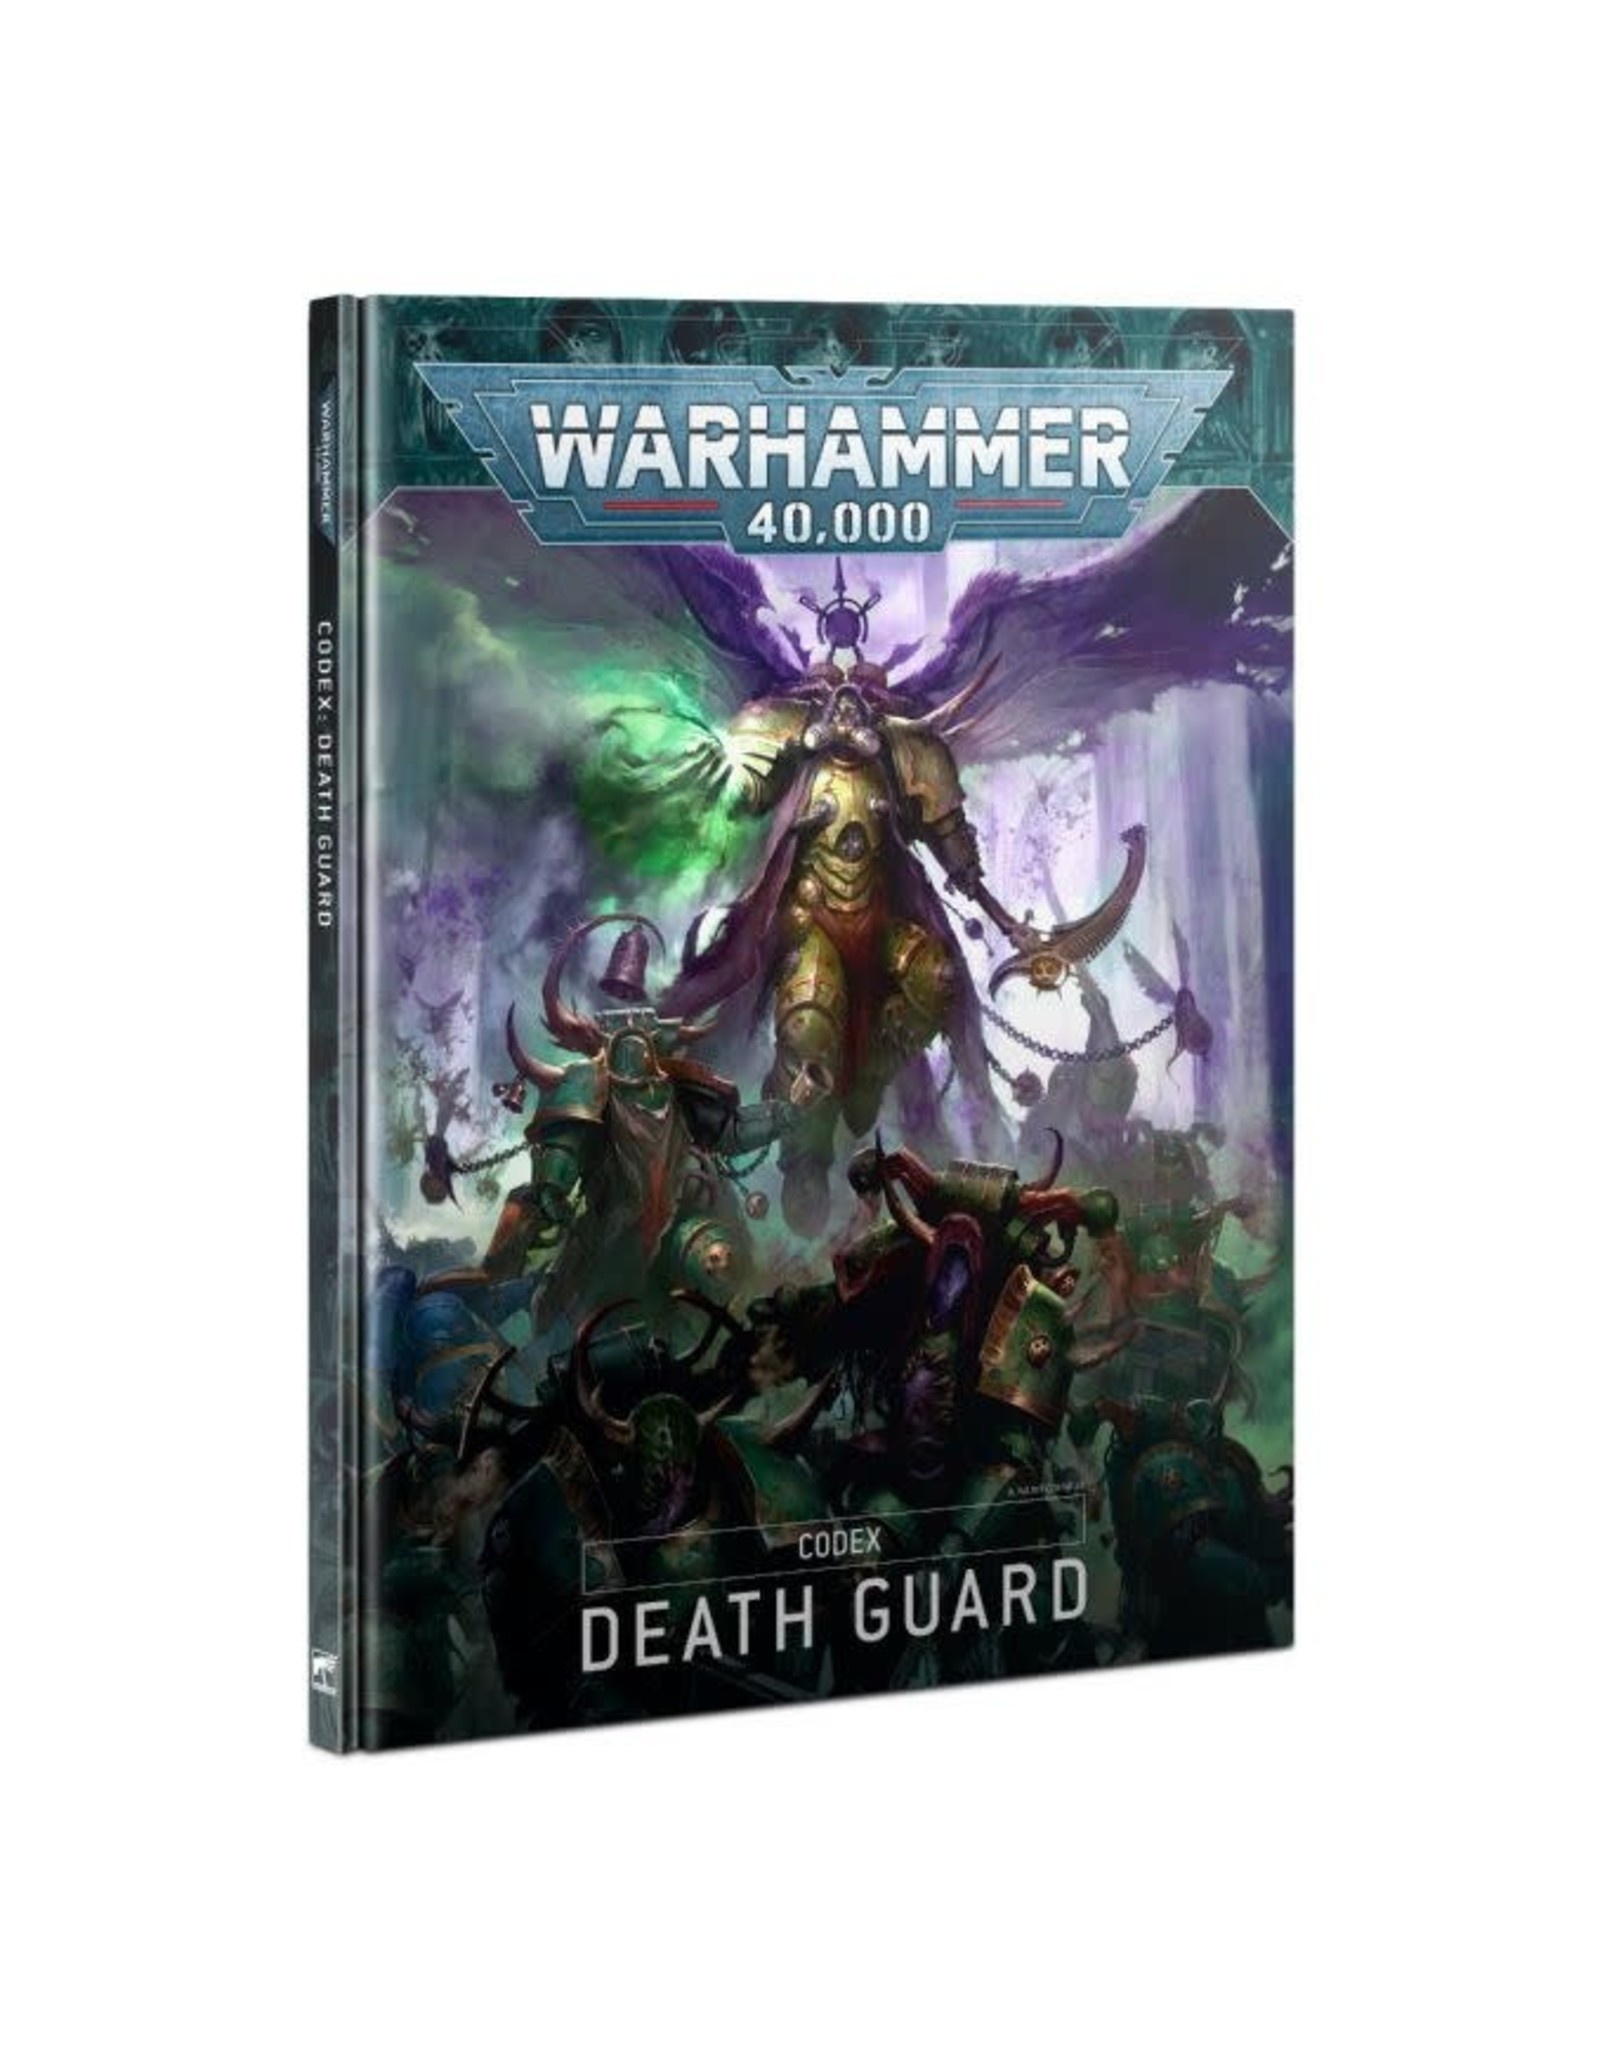 Games-Workshop CODEX: DEATH GUARD (HB) (ENGLISH) 9th